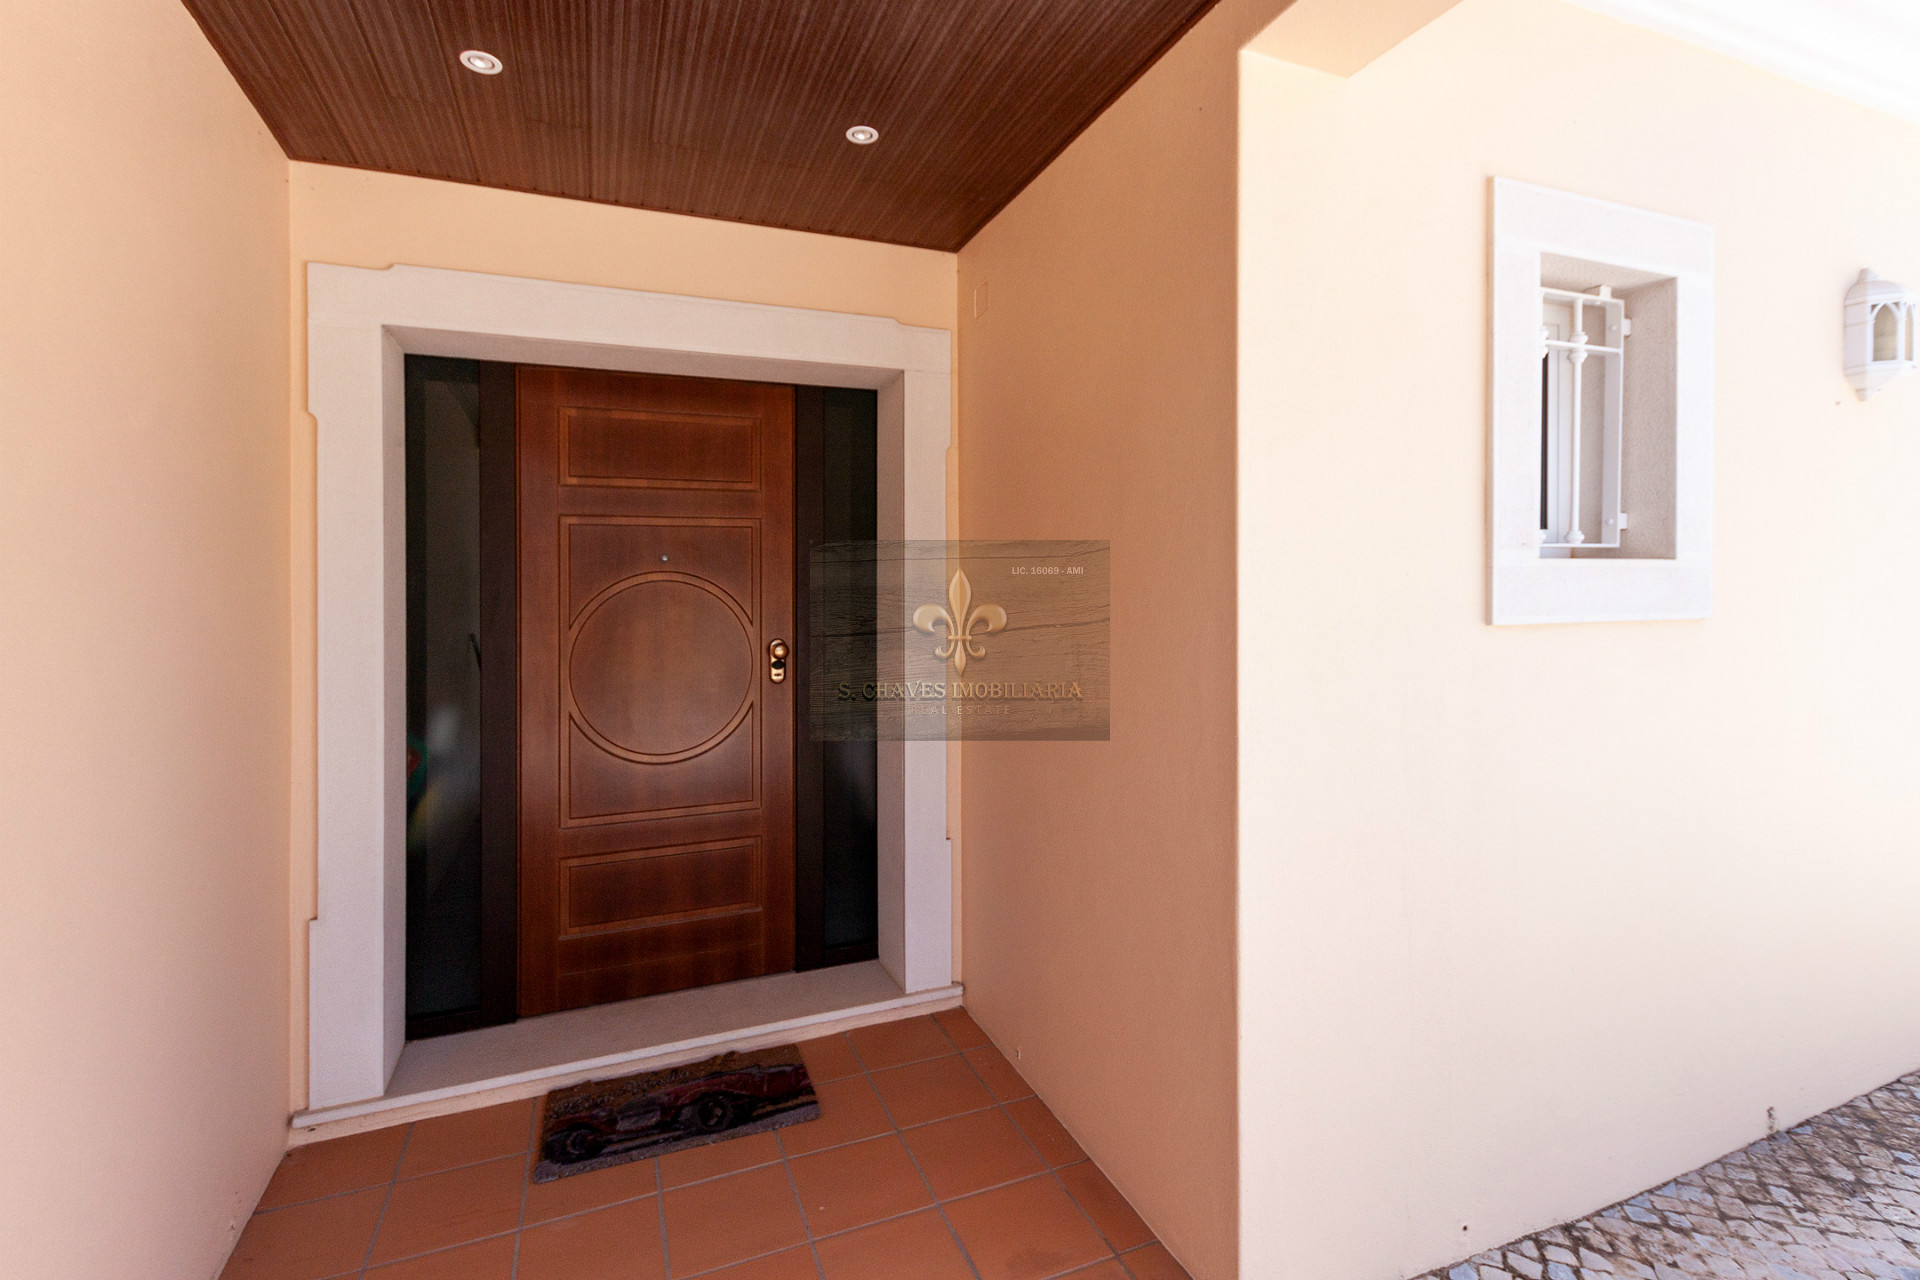 Luxury 4 Bedroom Villa with swimming pool in Fonte Santa - Quarteira